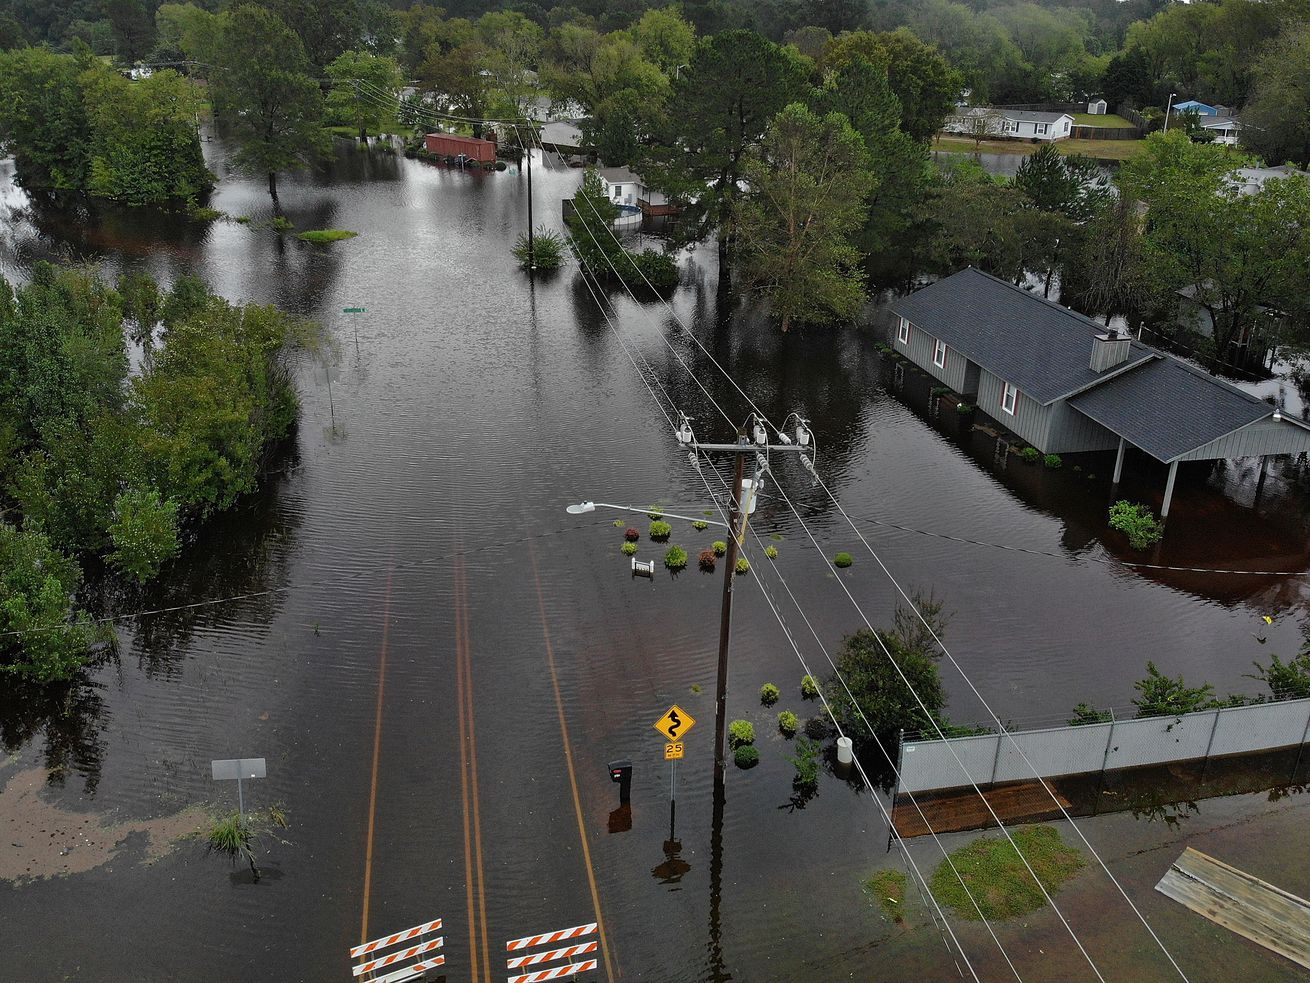 Flood waters from Hurricane Florence surround a house and flow along the street on September 16, 2018 in Fayetteville, North Carolina. Rain continues to inundate the region causing concern for large scale flooding after Hurricane Florence hit the North Carolina and South Carolina area.